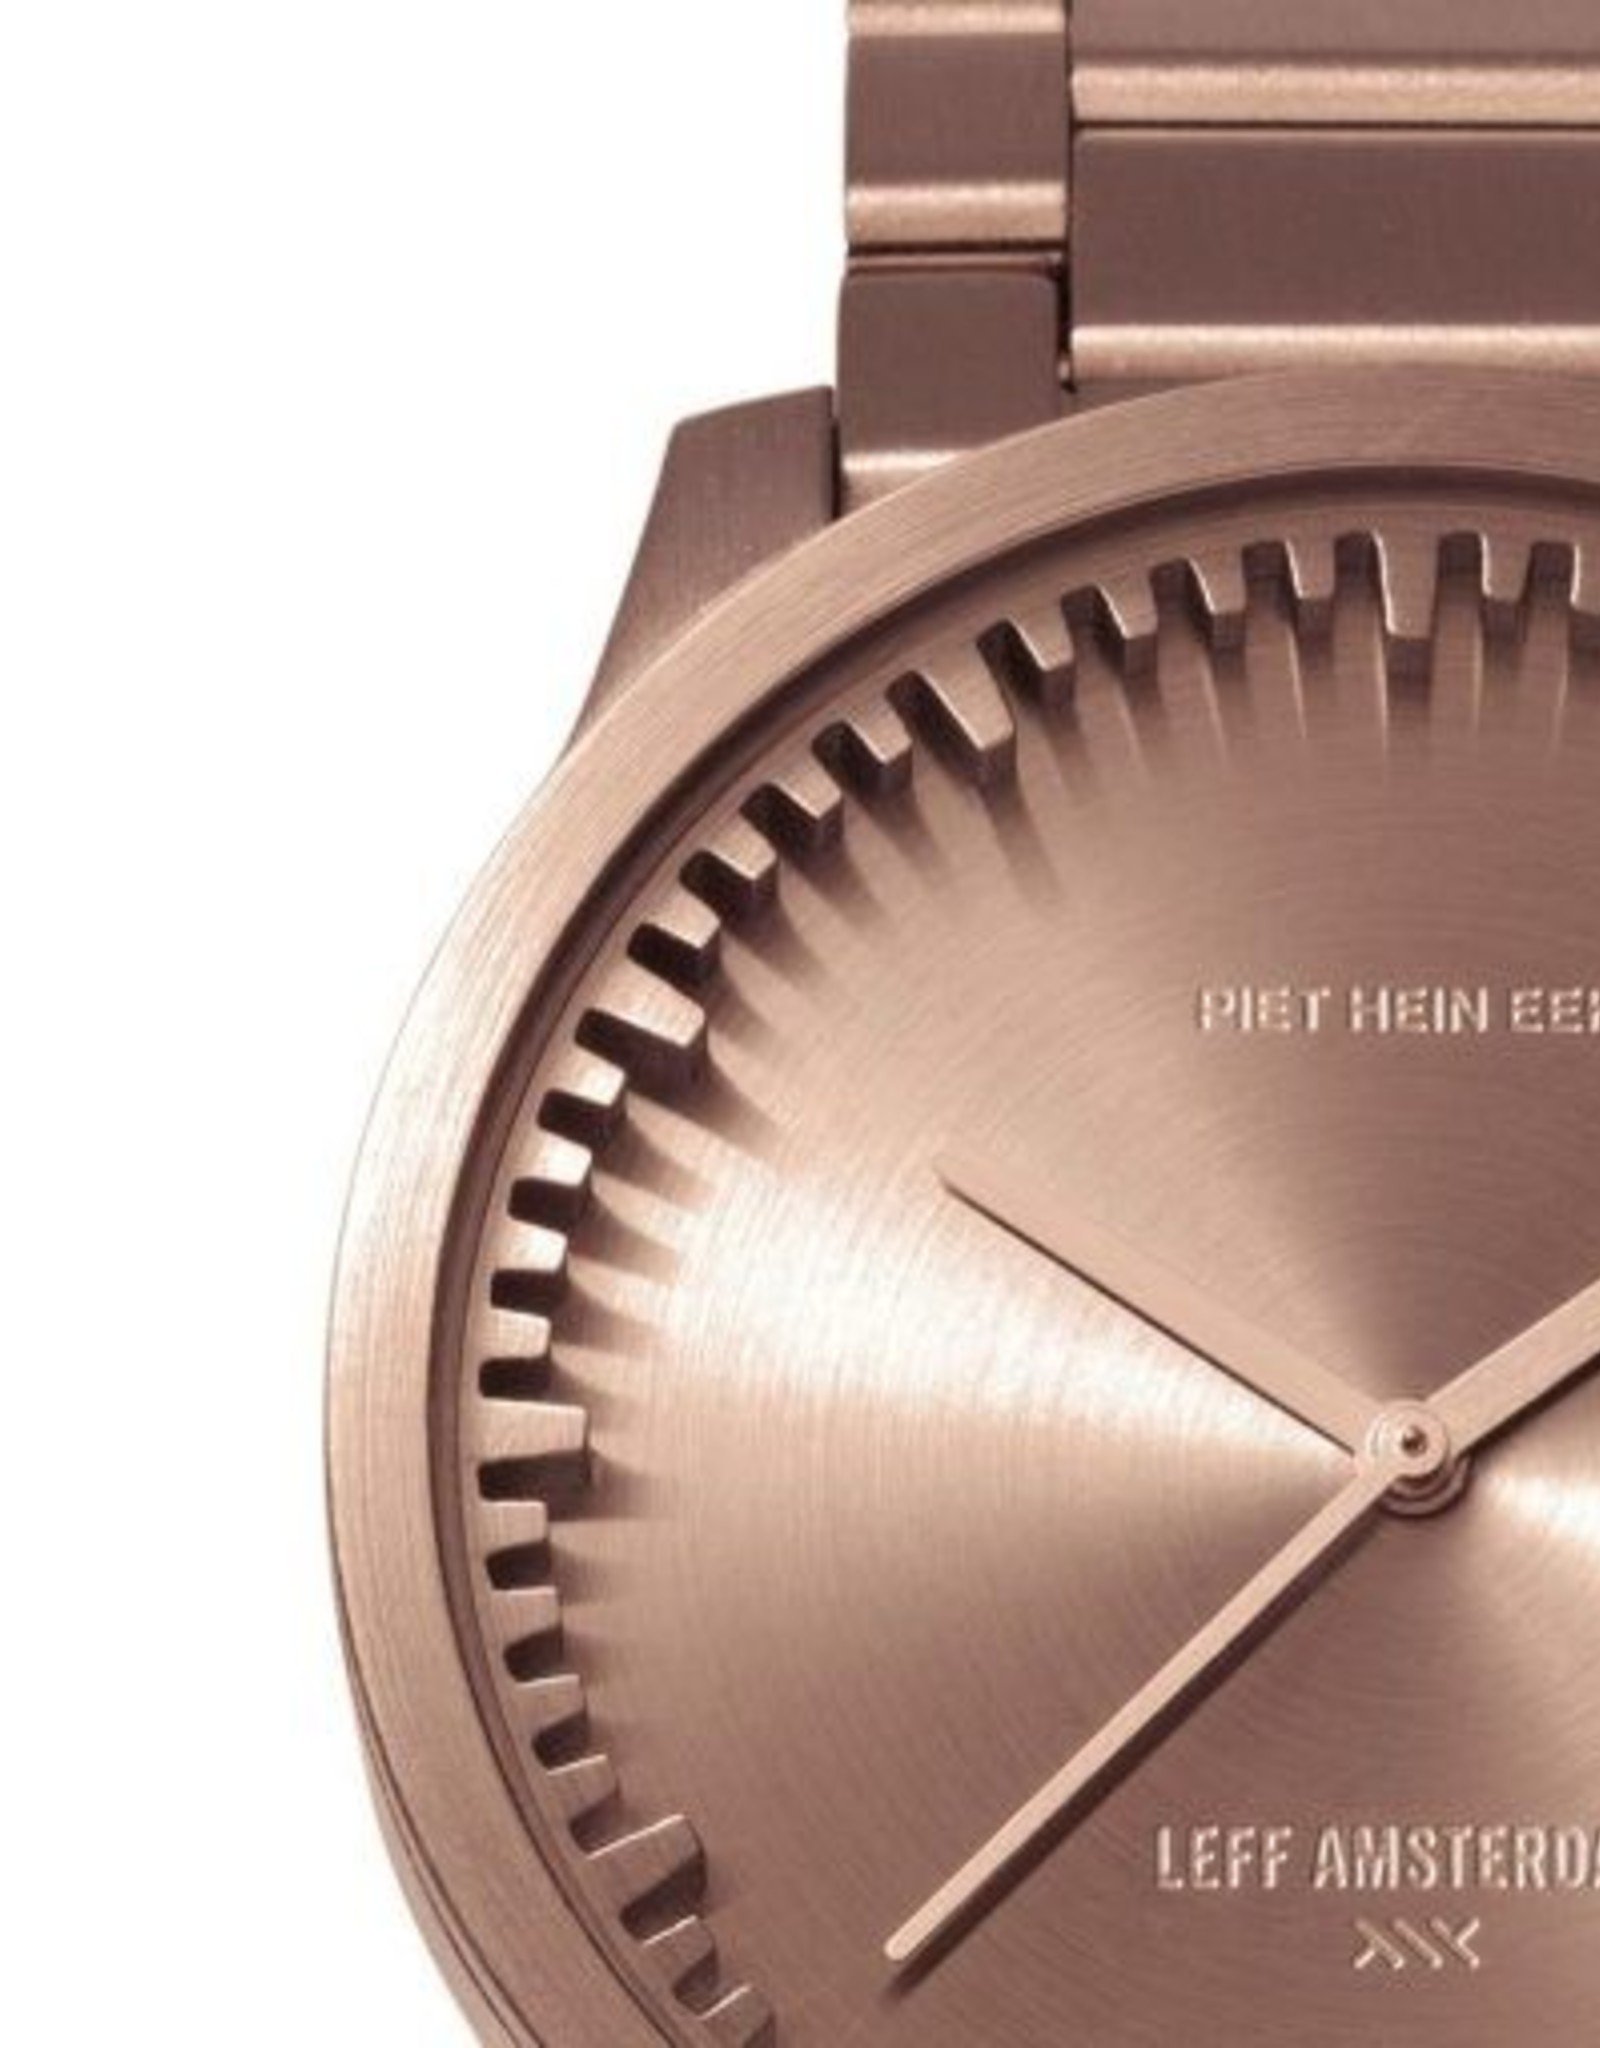 Leff Amsterdam Tube Watch S - Rose Gold 38mm Case